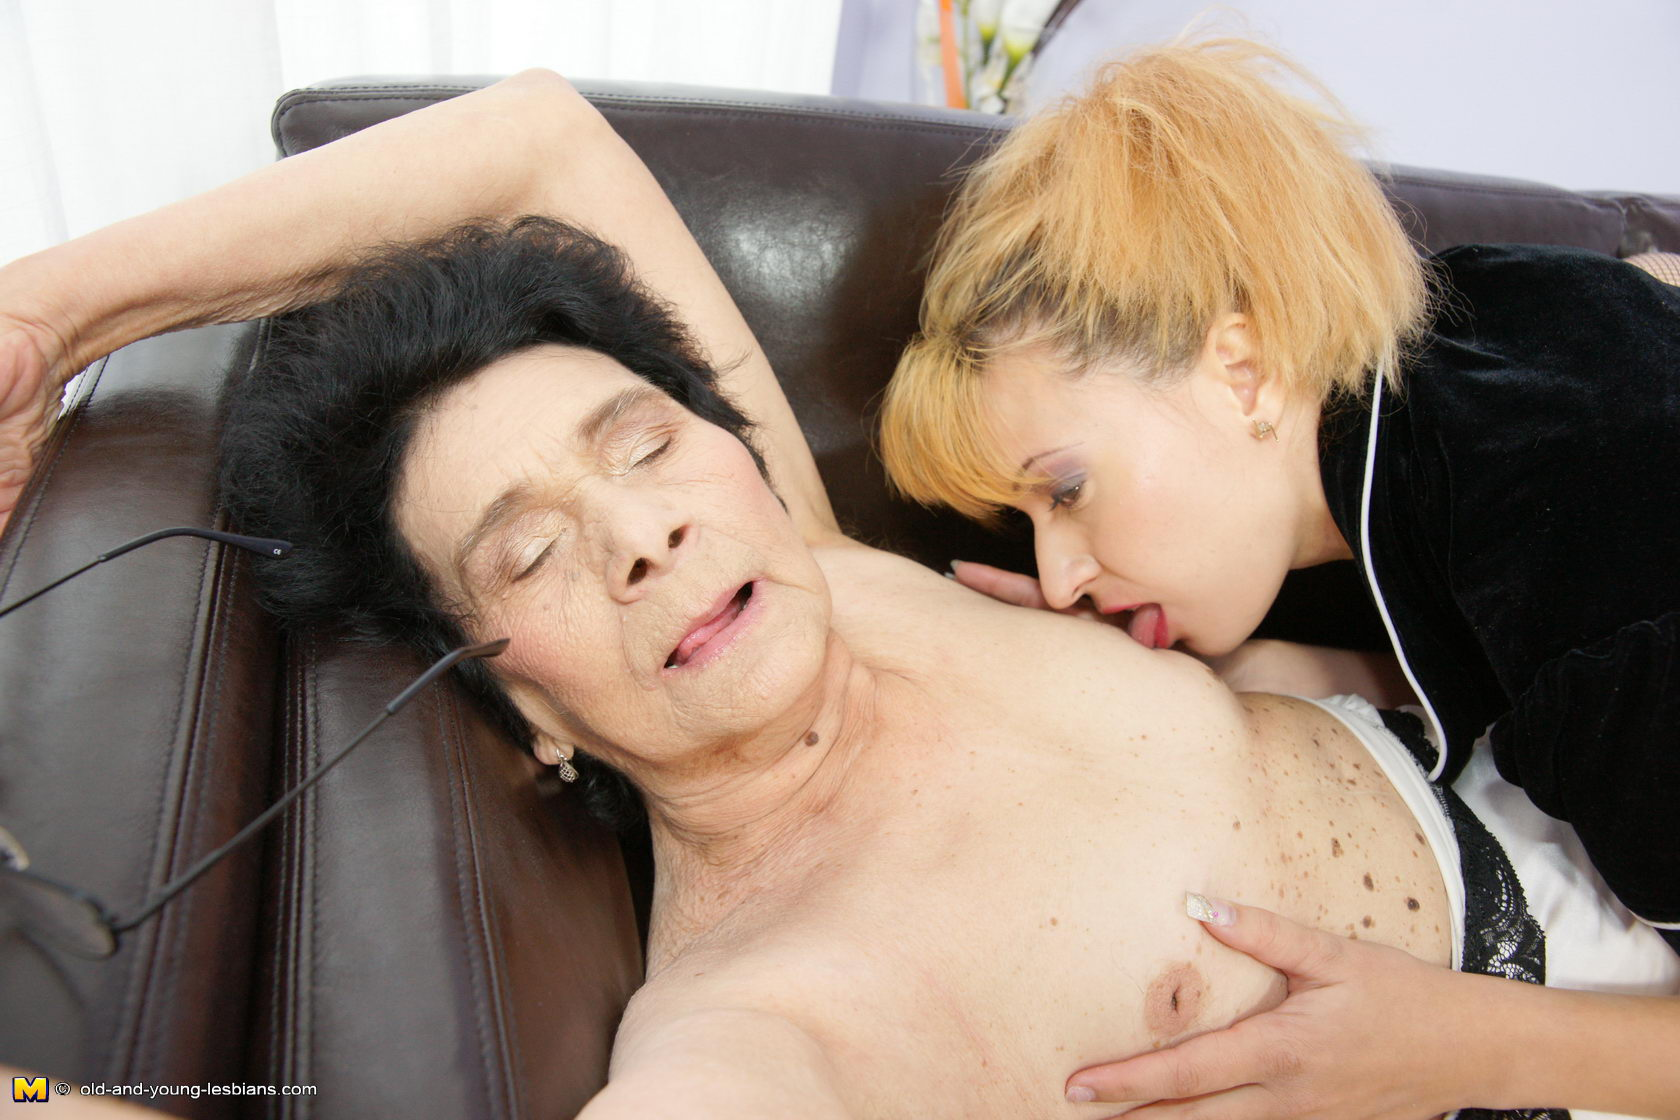 hairy granny lesbian | the hairy lady blog